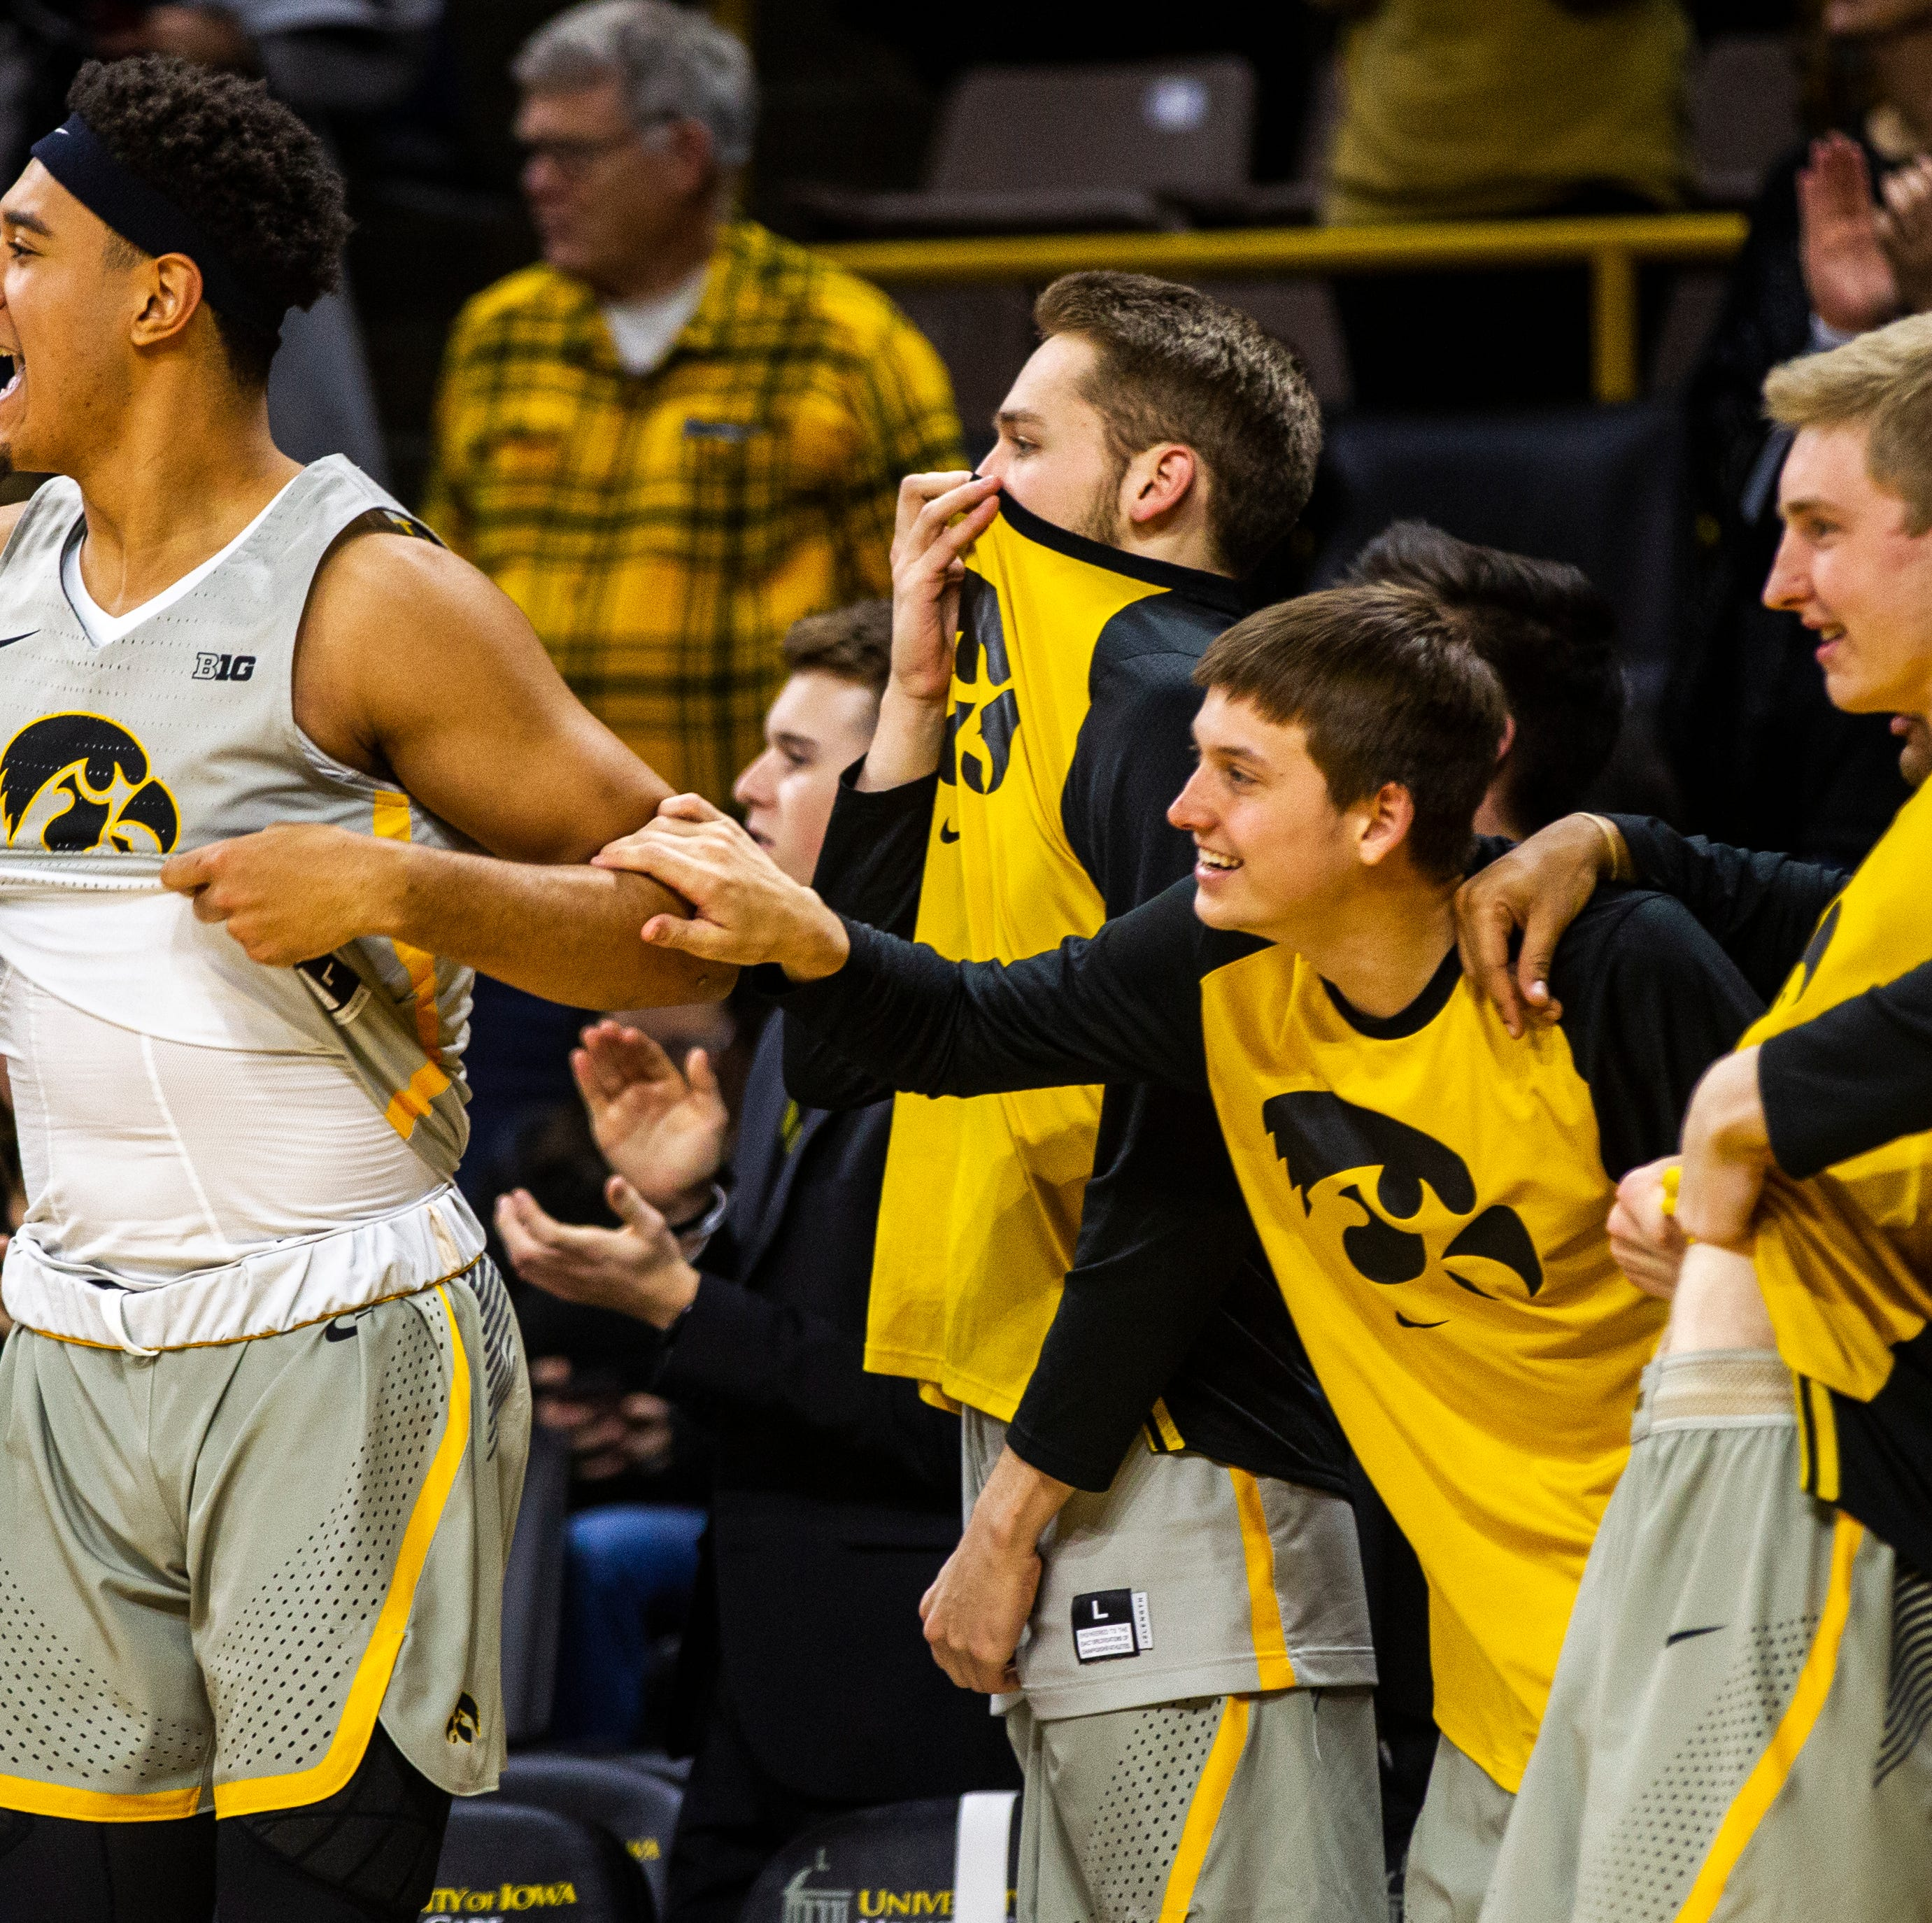 Iowa basketball takeaways: On Pemsl playing again, Wieskamp's ankle, Cook's dominance